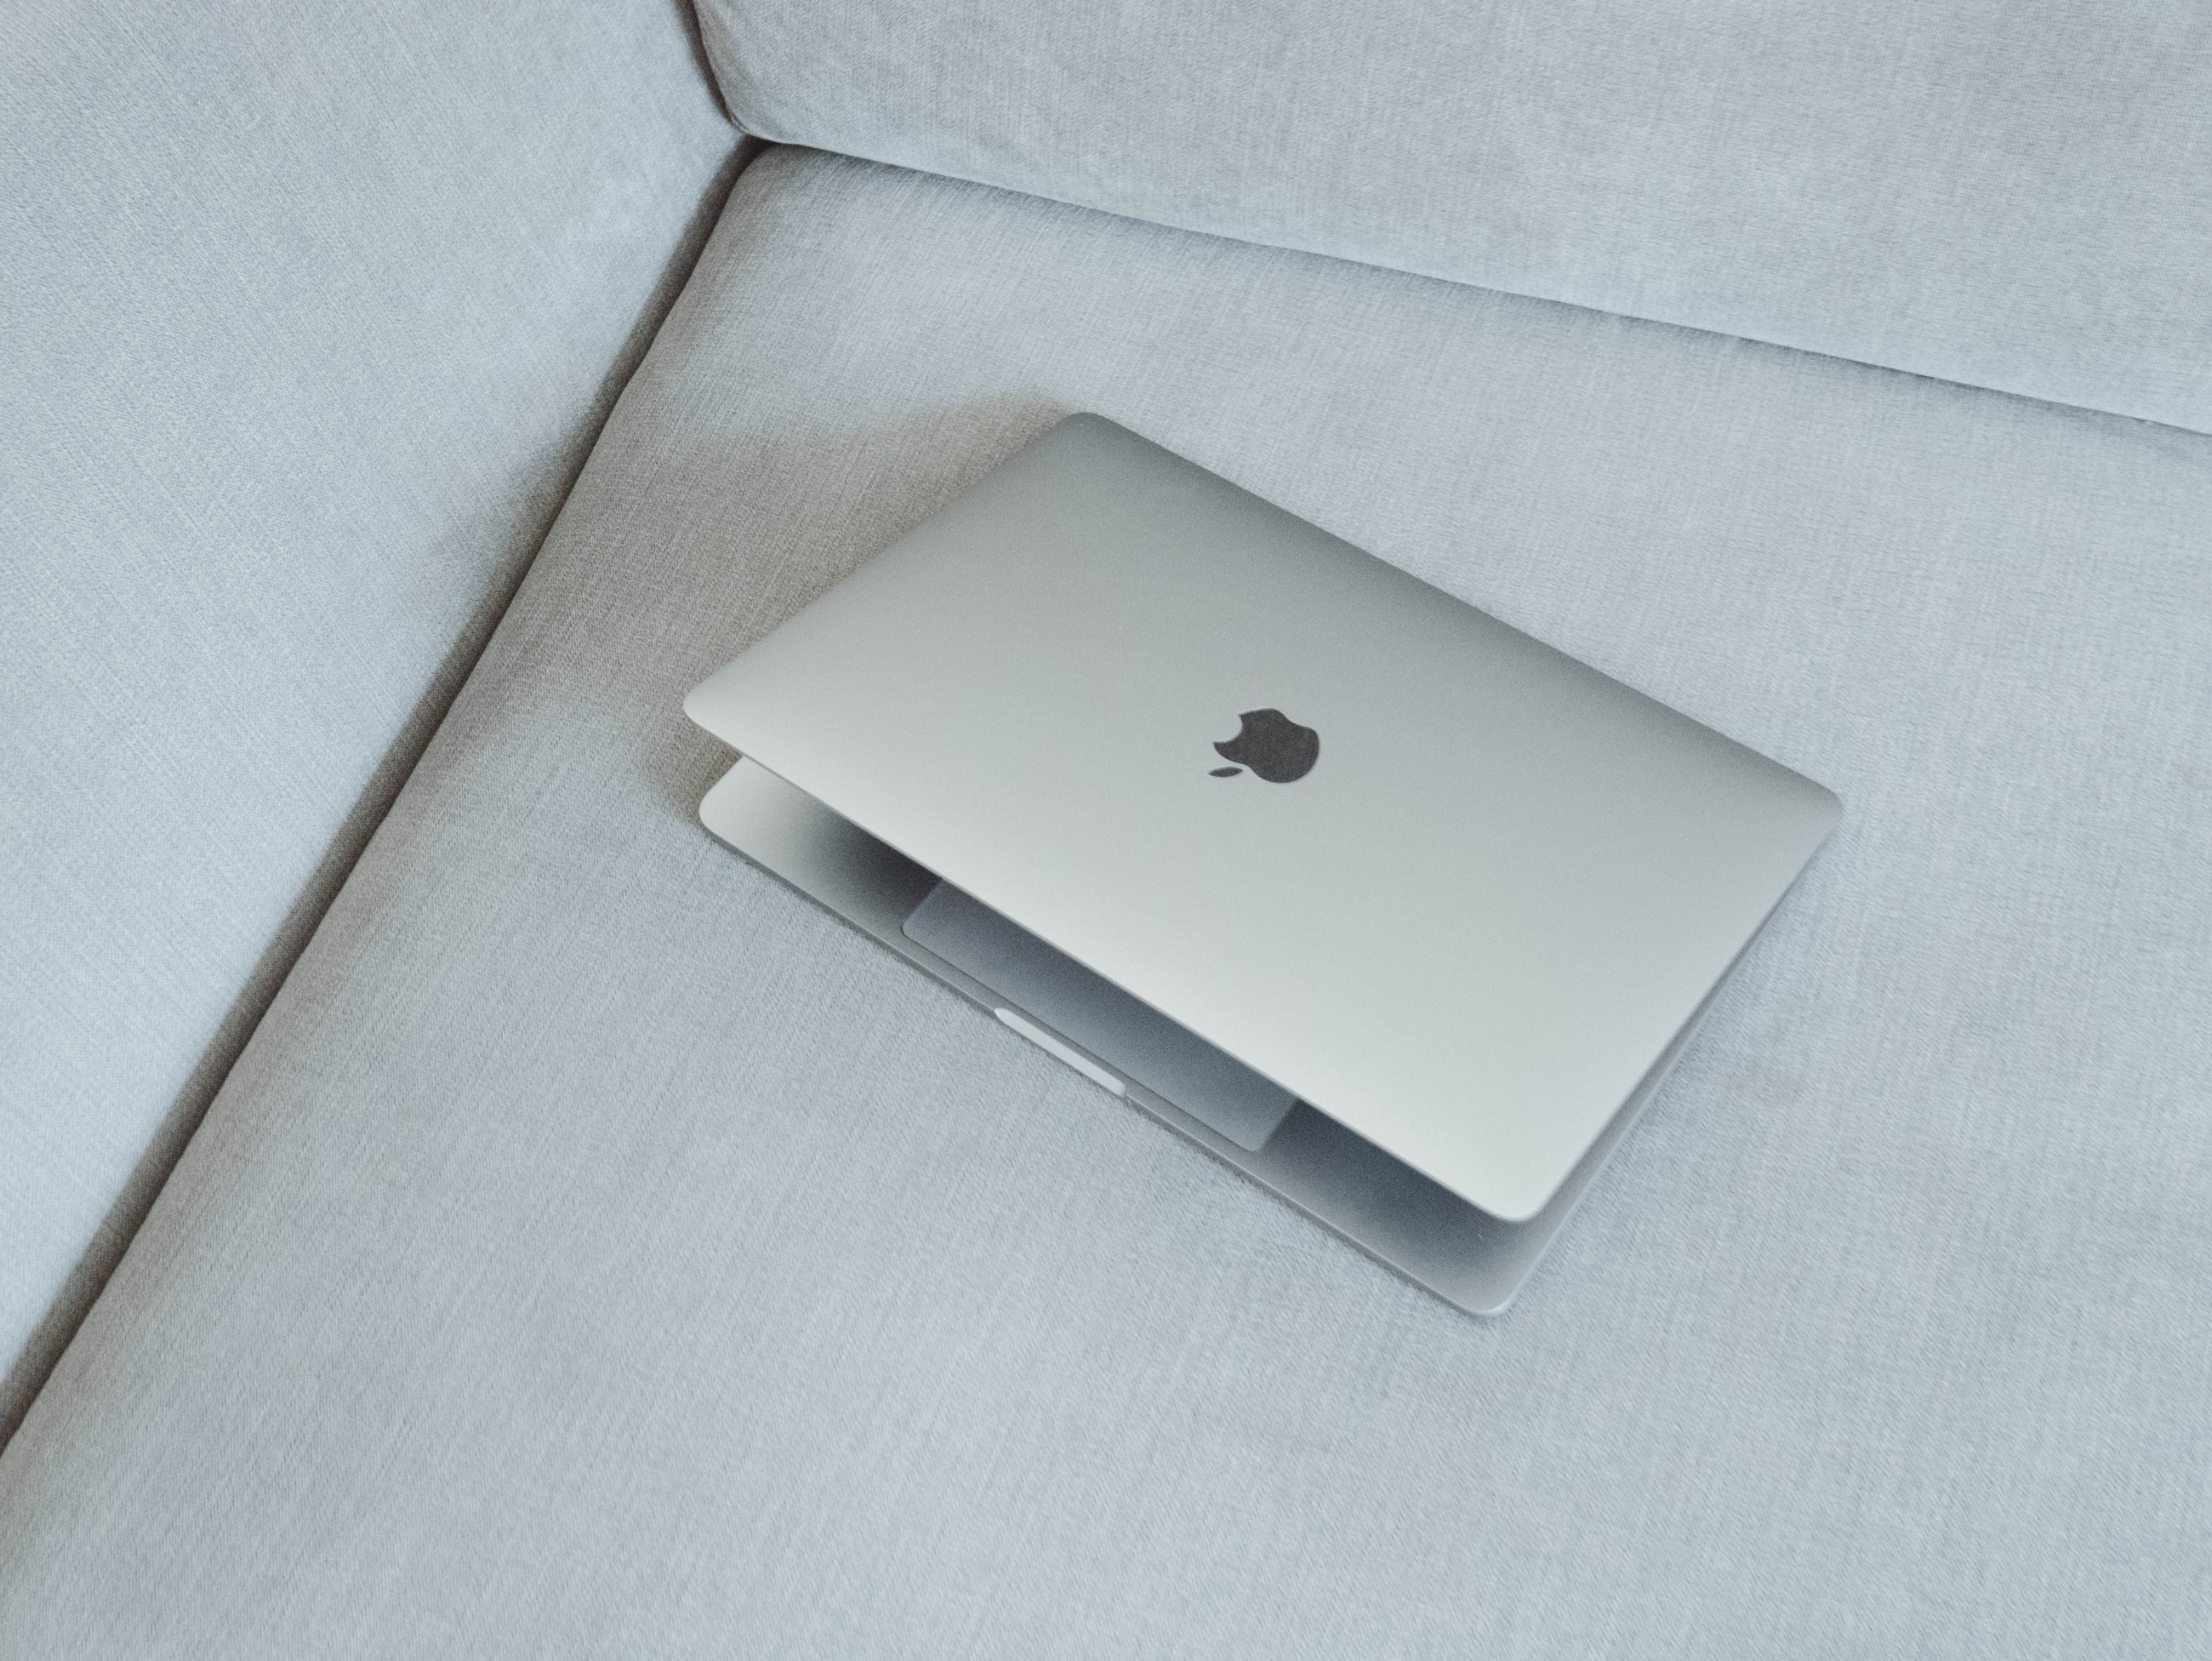 /i-bought-a-used-laptop-while-everyone-hypes-the-pixelbook-bd55467a8c2f feature image